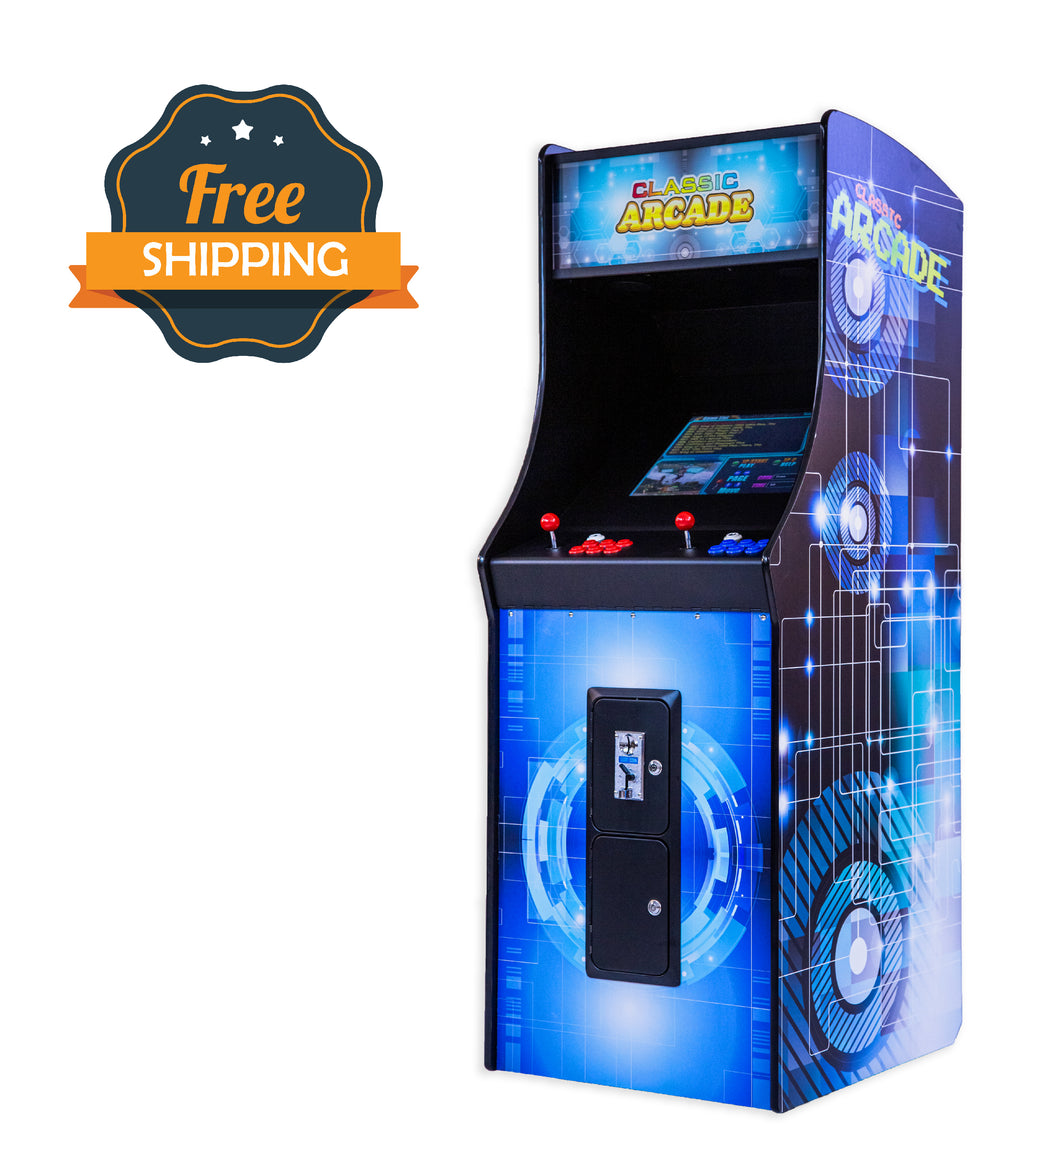 Full-Sized Upright Arcade Game with 750 Midway Games